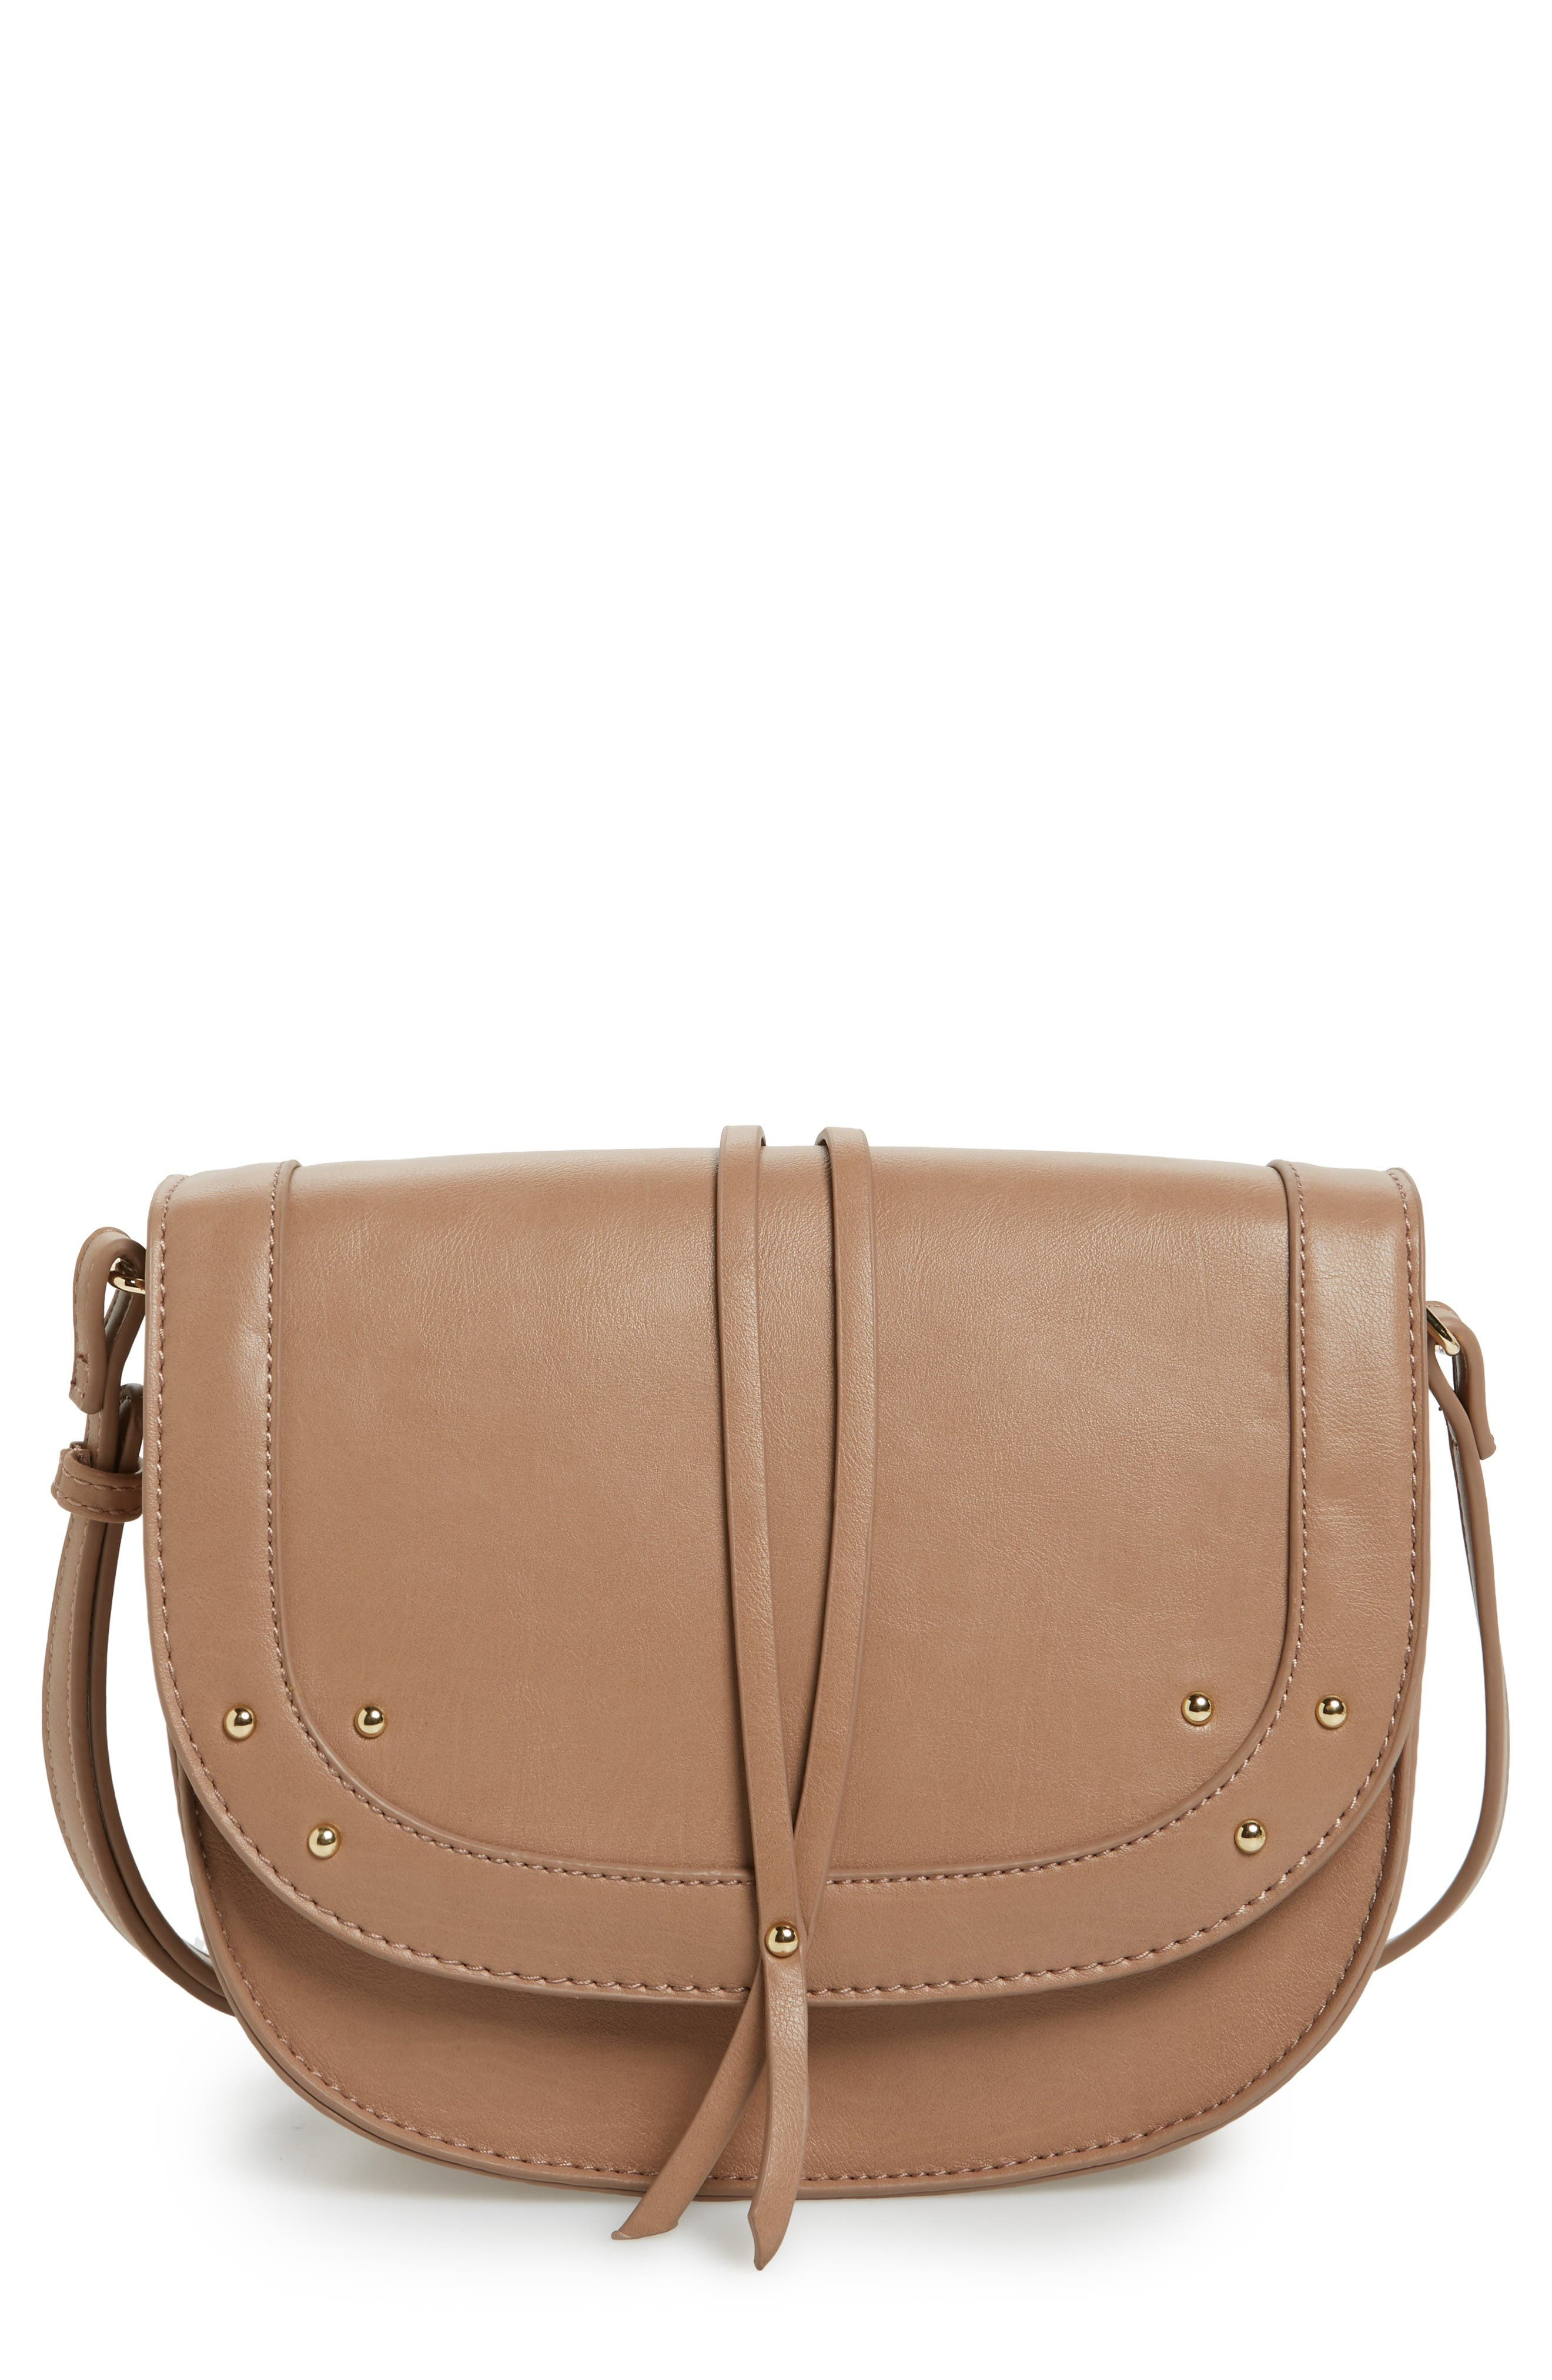 Alternate Image 1 Selected - Sole Society Faylina Studded Faux Leather Saddle Bag